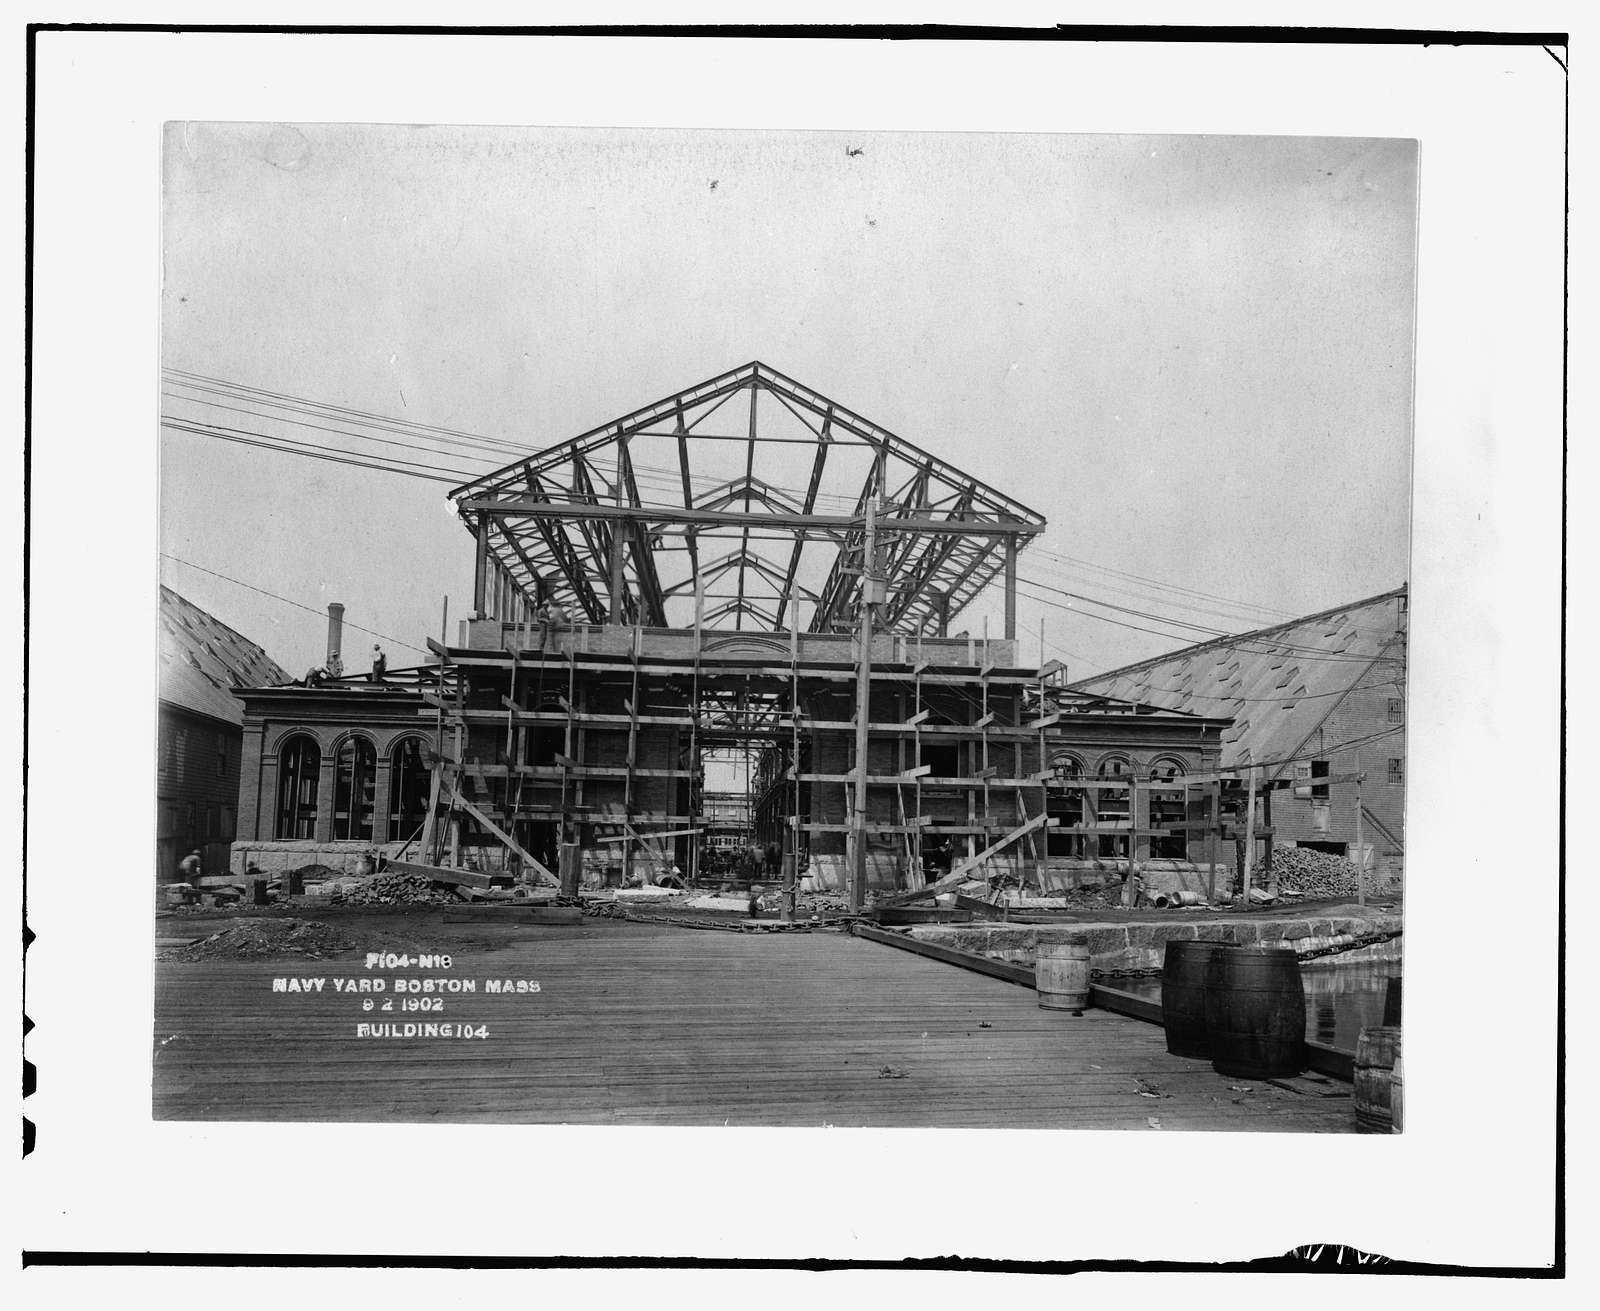 Charlestown Navy Yard, Shipfitters' Shop, Southeast side of First Avenue between Ninth & Thirteenth Streets, Boston, Suffolk County, MA